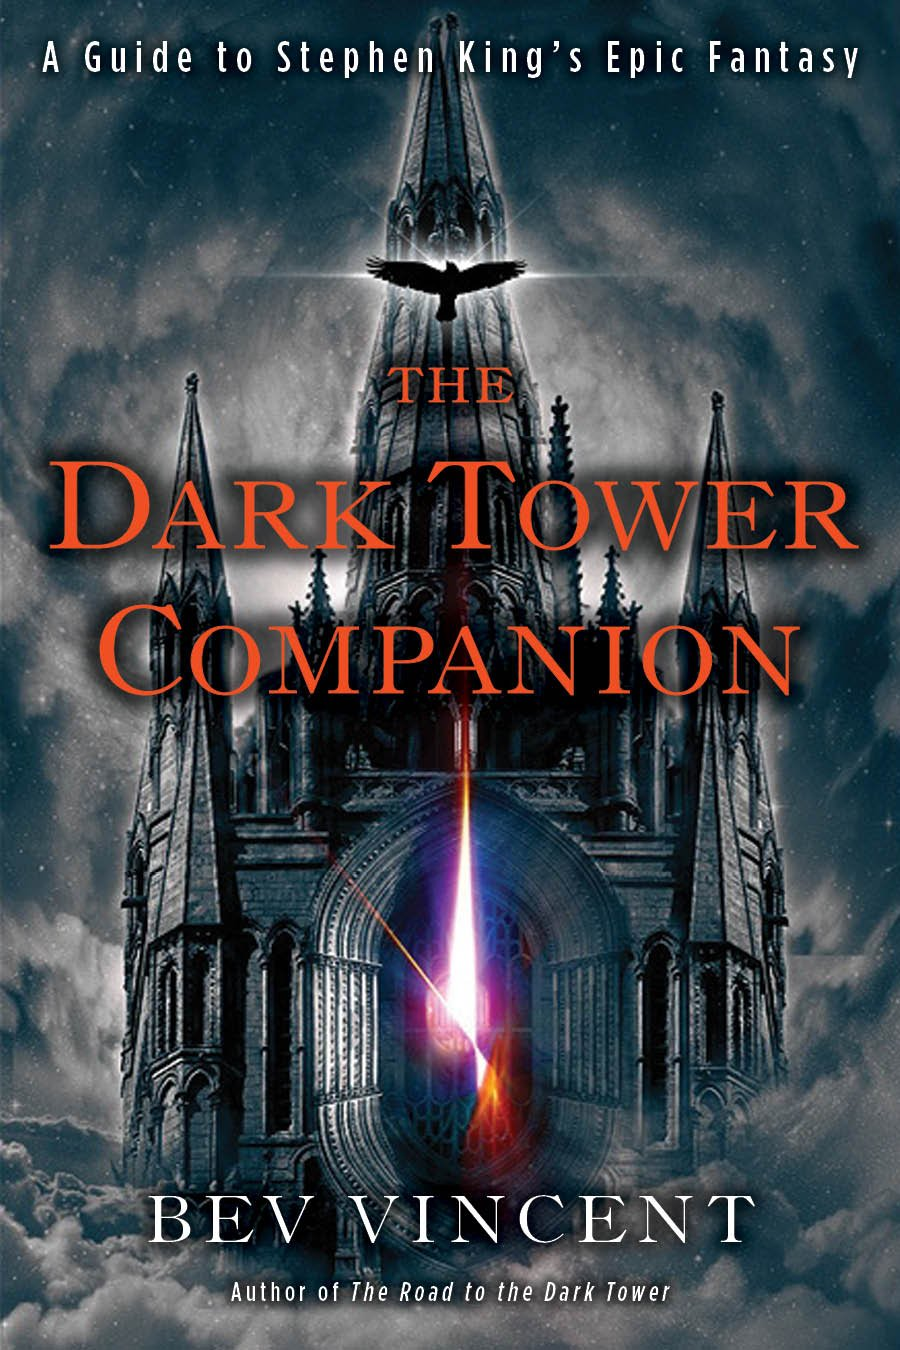 [thedarktower companion bevvincent NAL2013 Stephen King ]